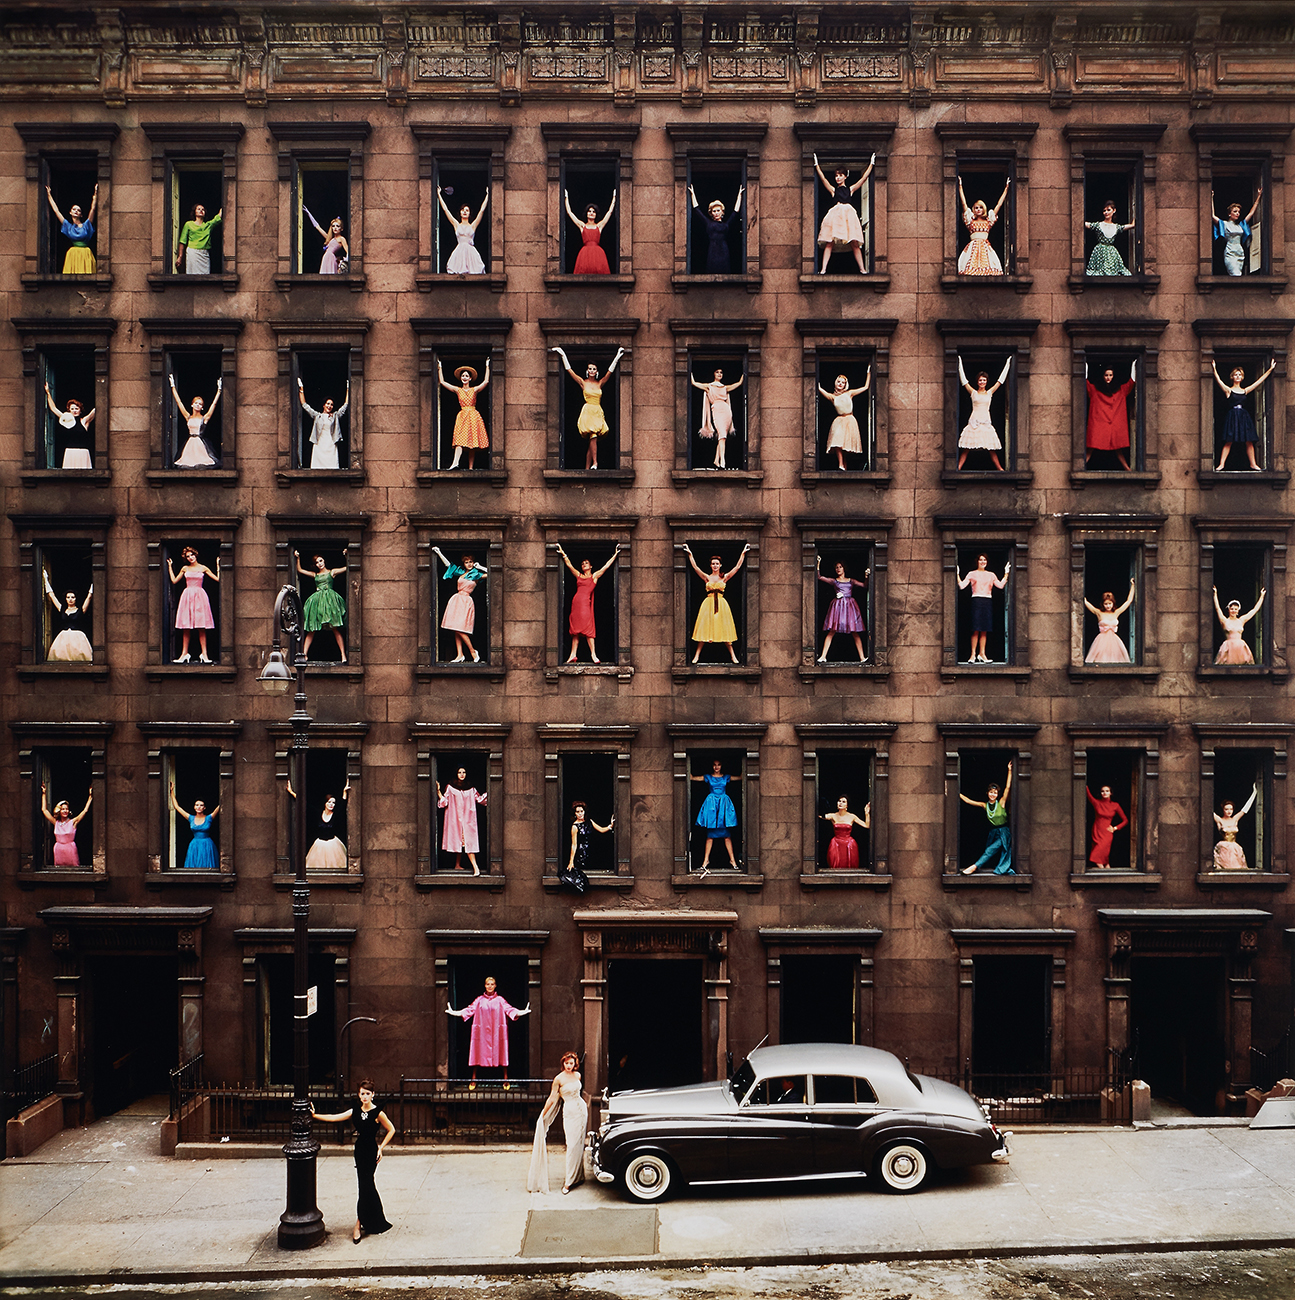 Ormond Gigli Girls in the Windows, New York City 1960 Chromogenic print, printed later. 49 1/2 x 49 1/2 in. (125.7 x 125.7 cm) Signed, titled, dated and numbered 31/75 in ink on the reverse of the mount. Estimate :  $ 25,000 - 35,000   - Courtesy of Phillips